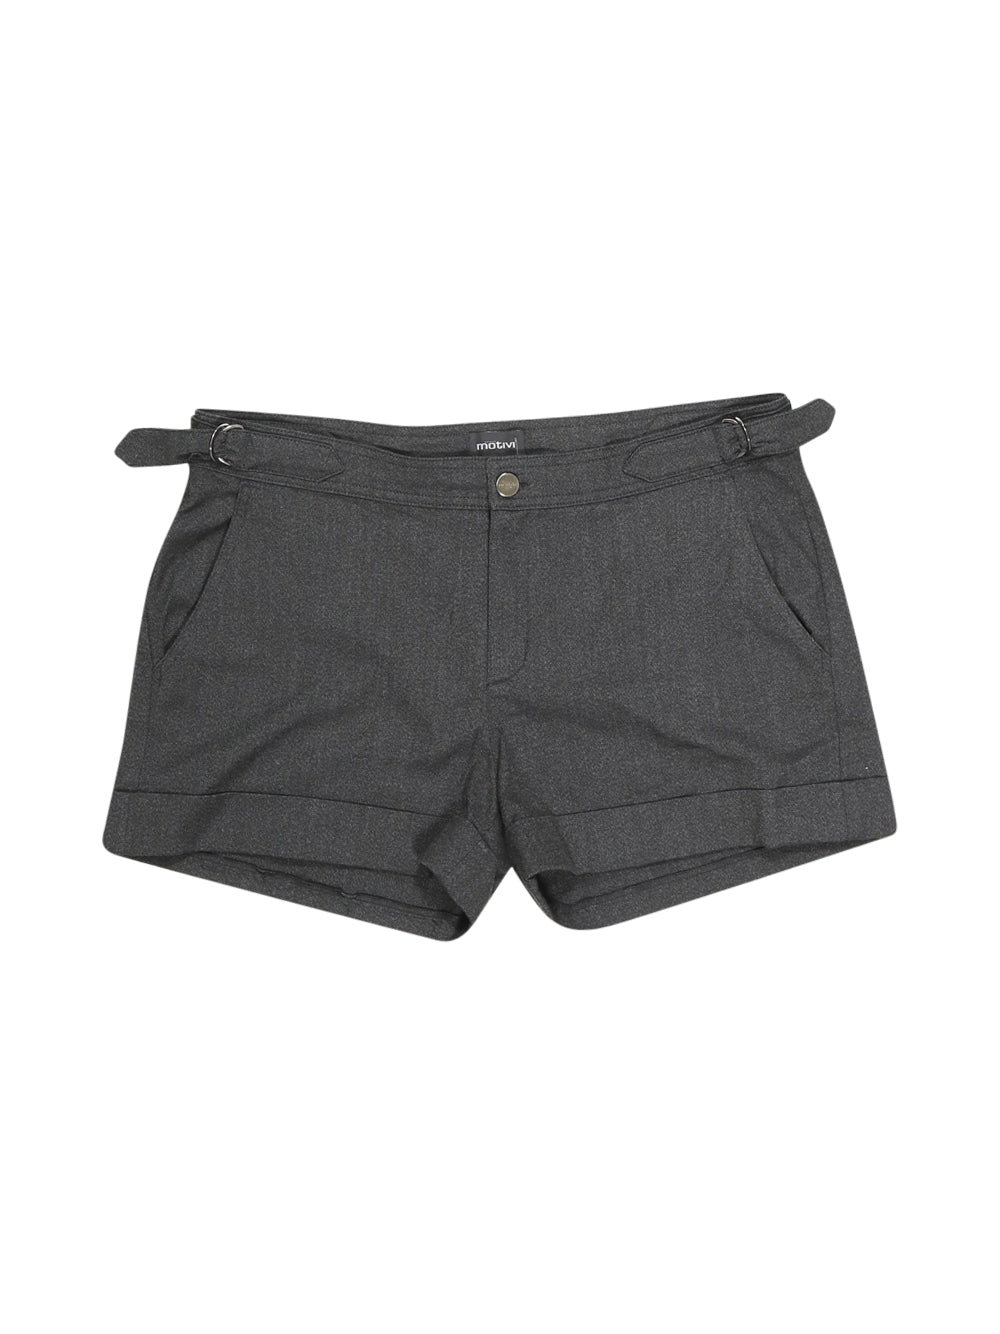 Front photo of Preloved Motivi Black Woman's shorts - size 12/L